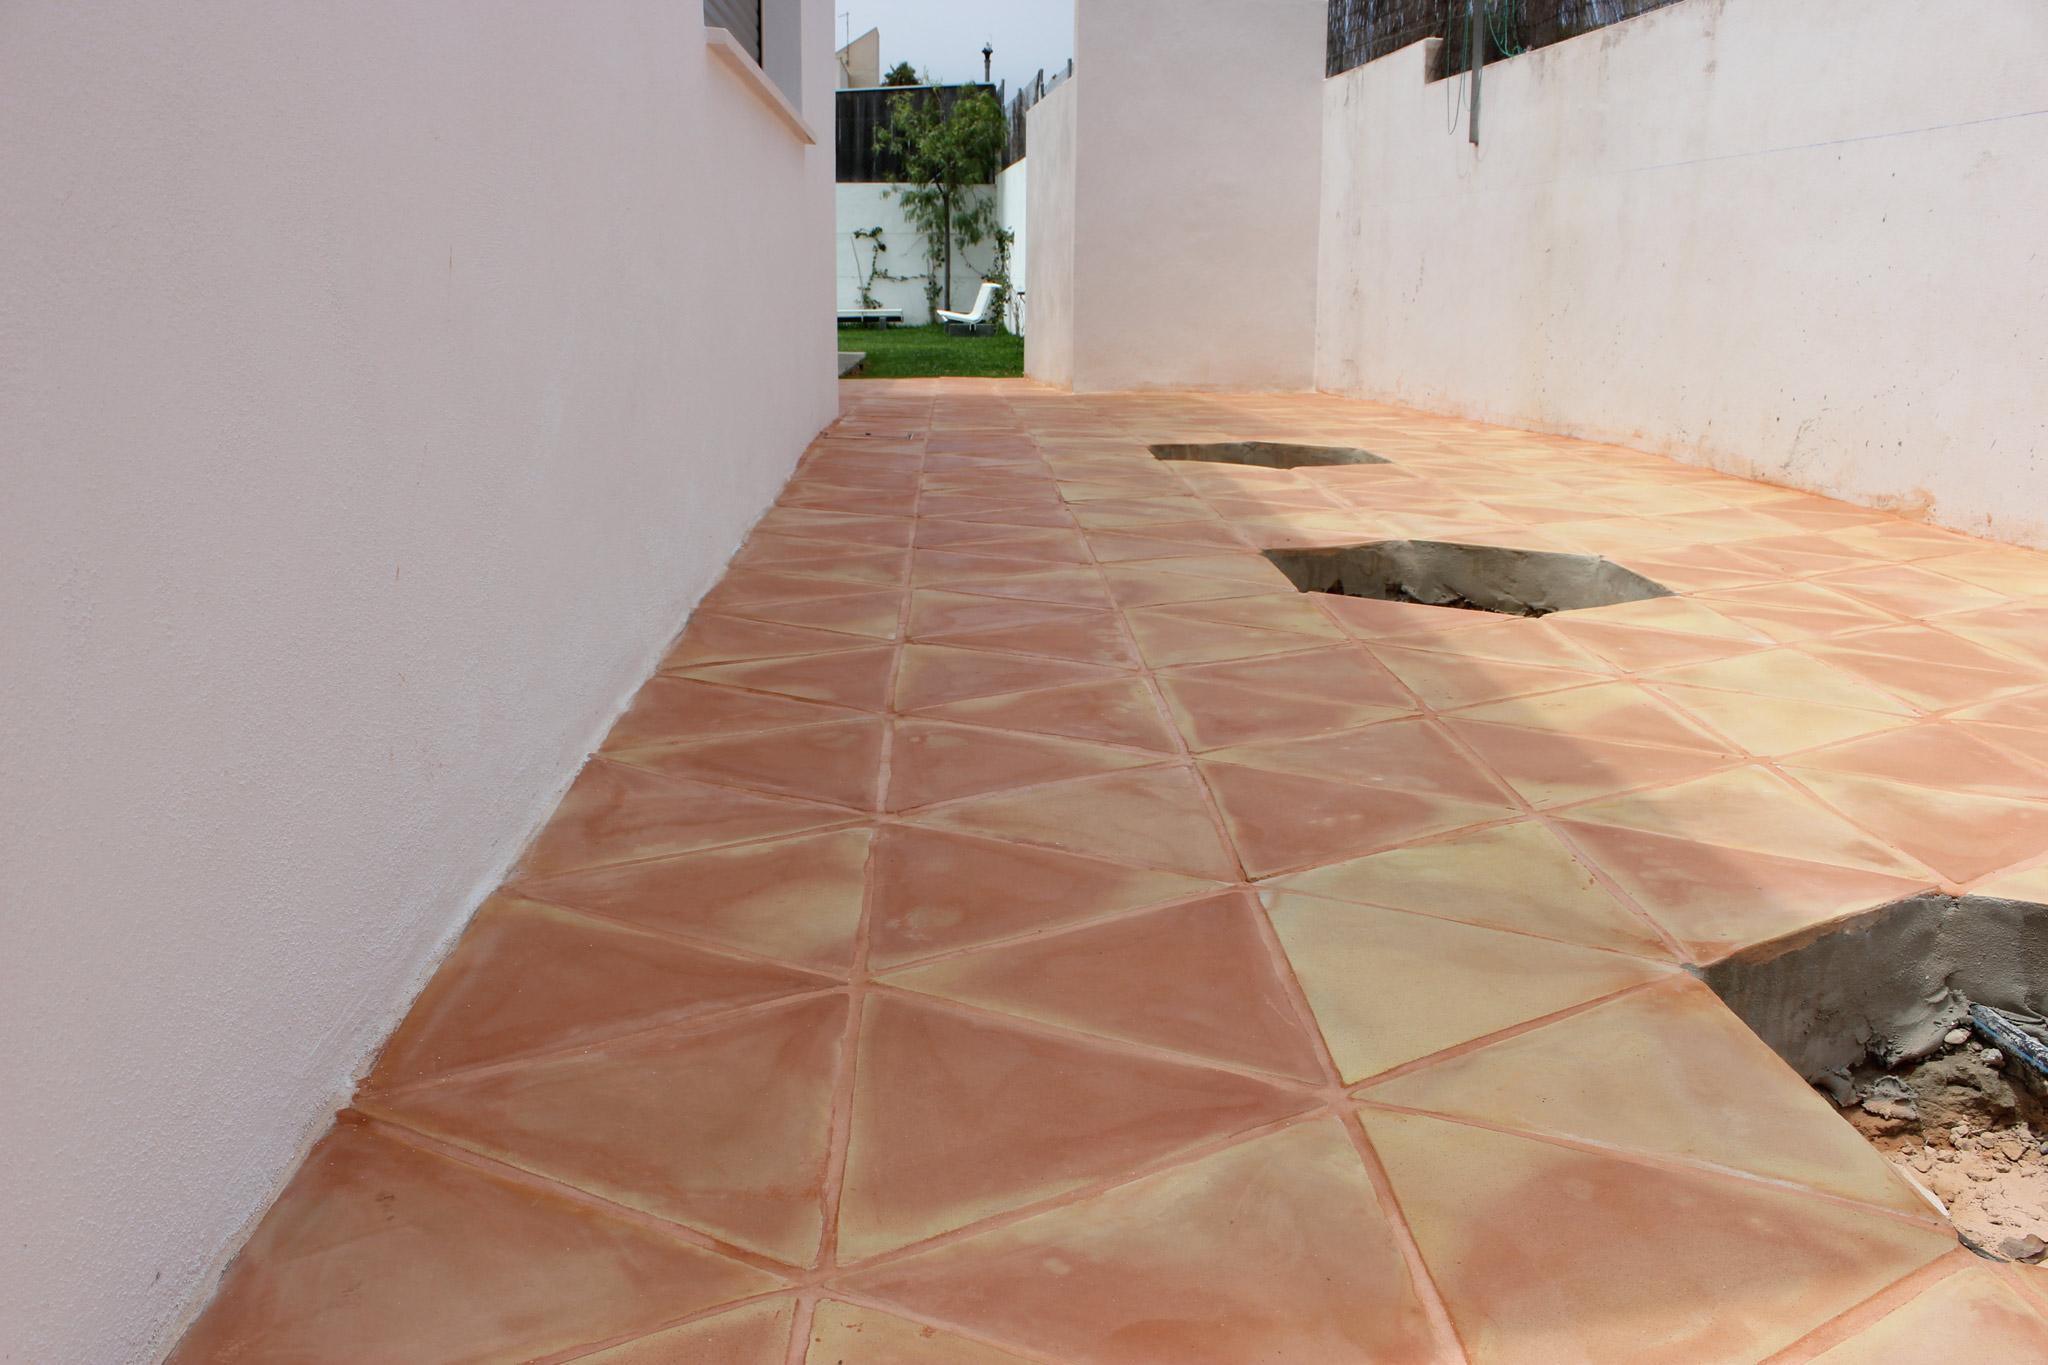 Clay Tiles Karachi Terracotta Floor Tiles in Lahore Pakistan (2)